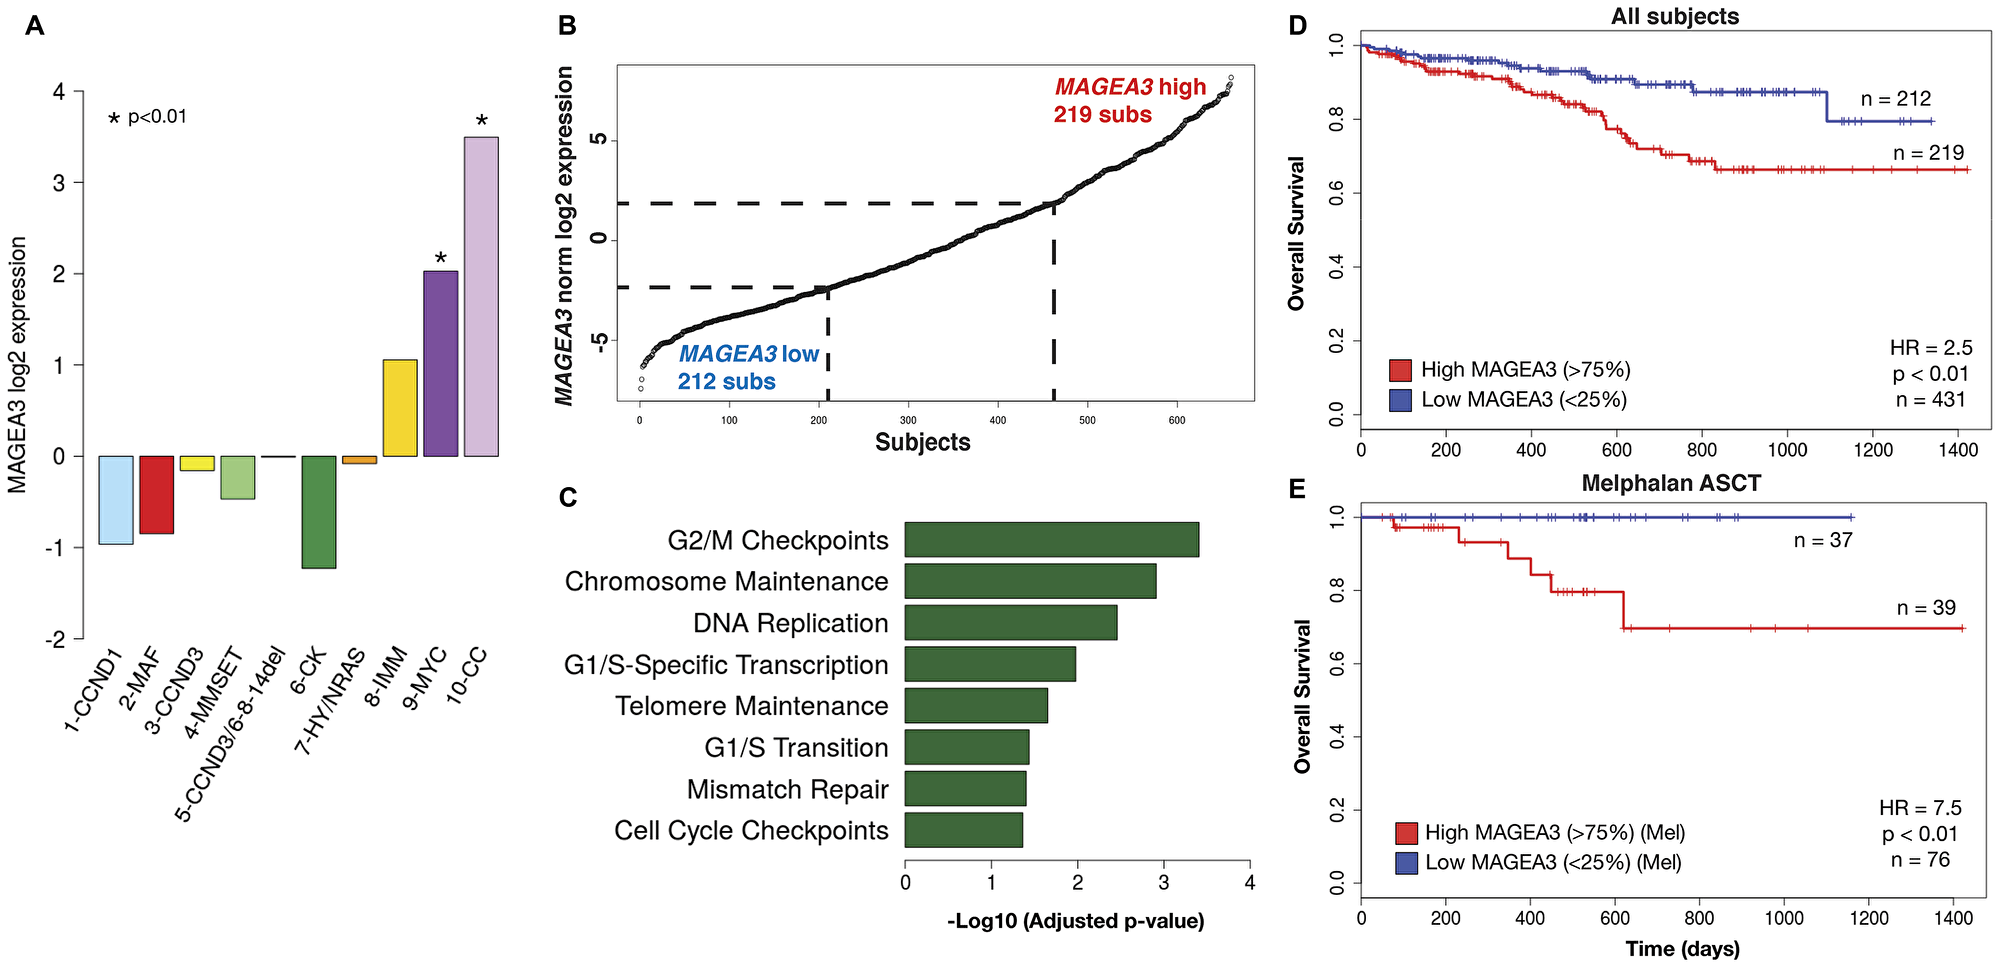 MAGEA3 expression is associated with cell cycling, DNA replication/repair, and poor prognosis.